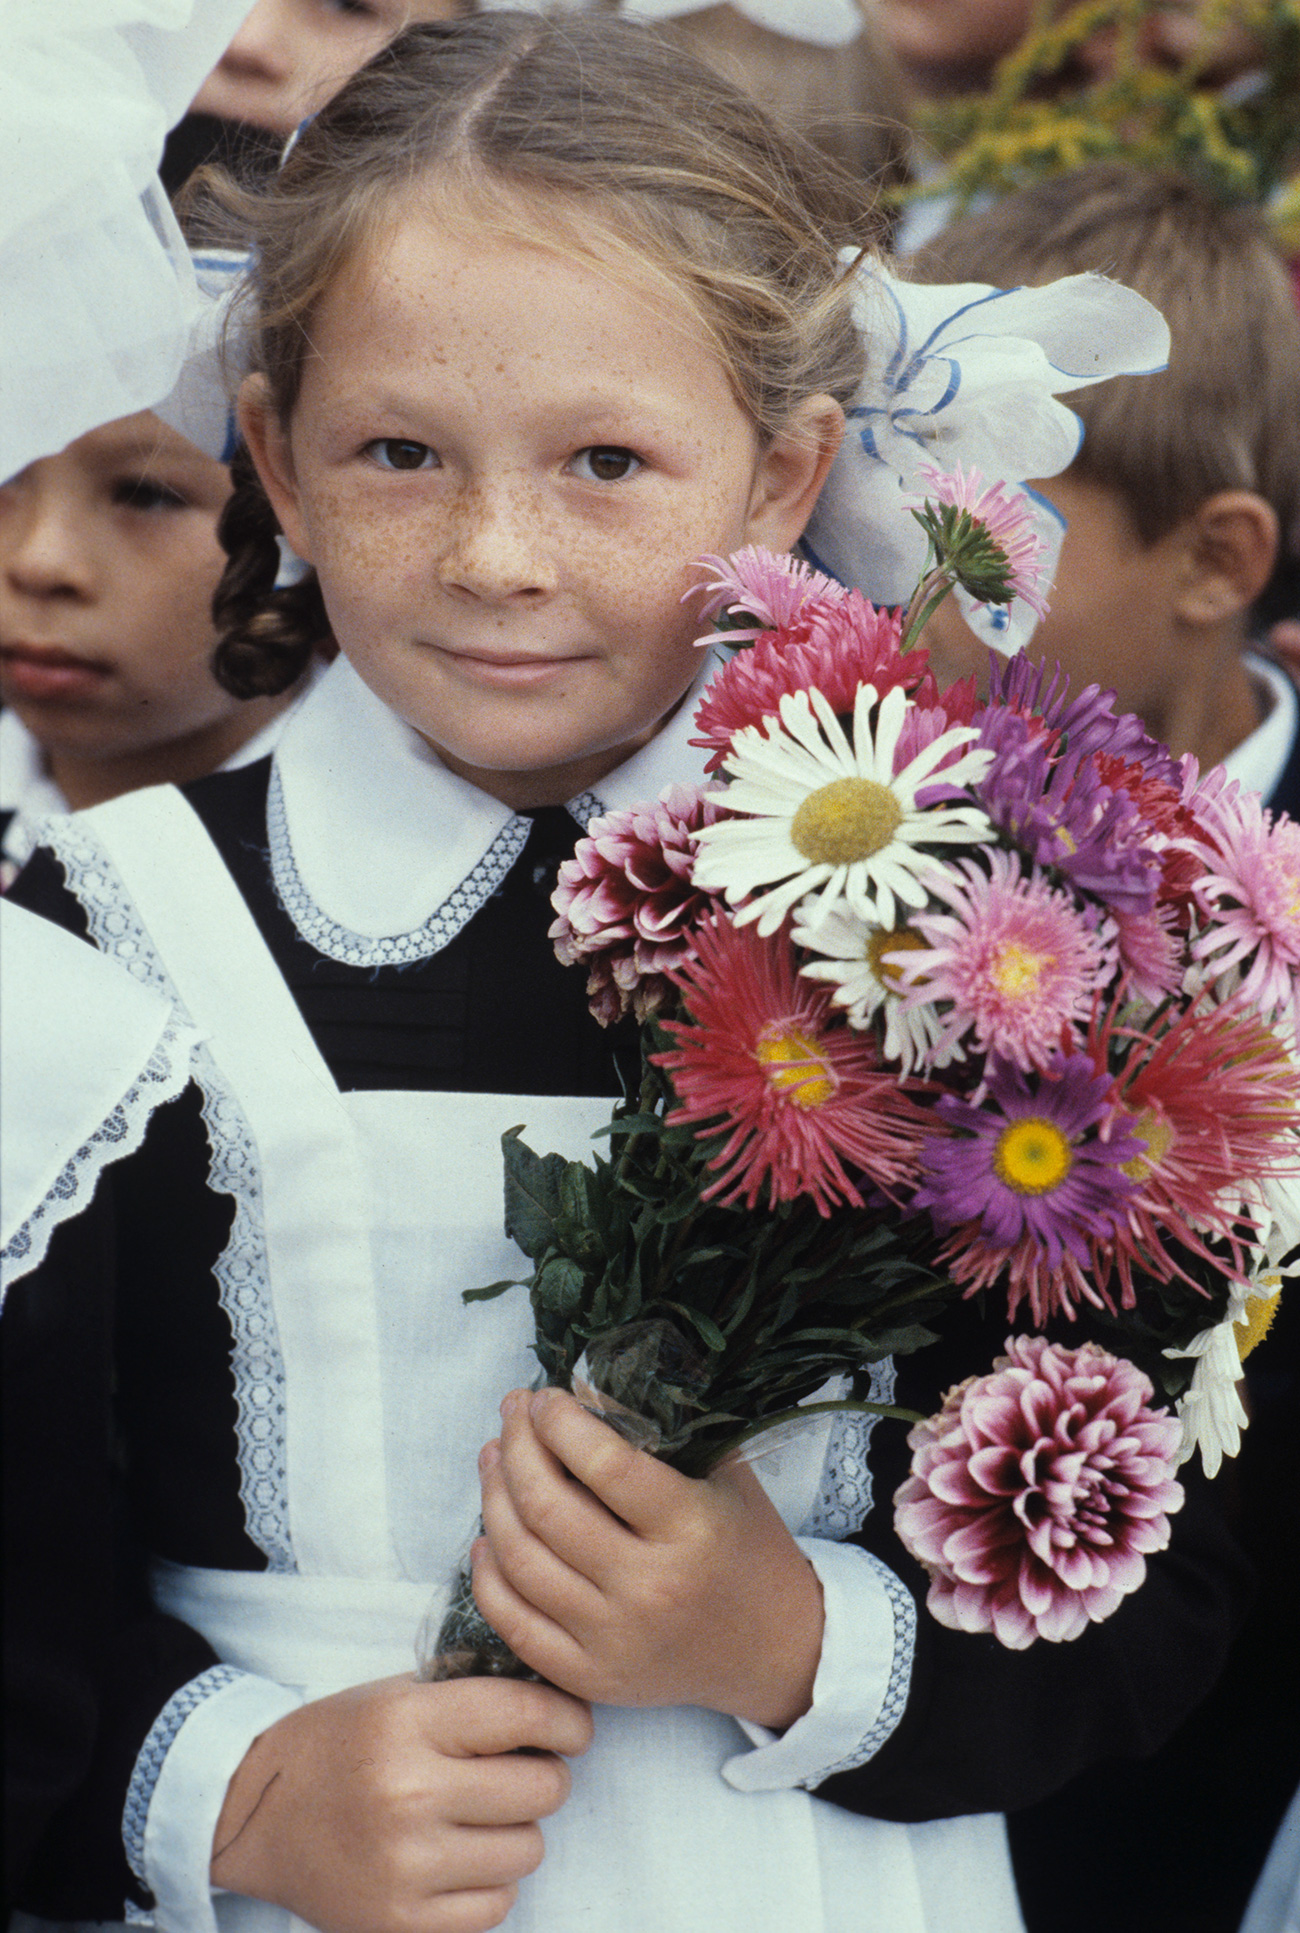 The school uniform was abolished in 1994, after the collapse of the USSR, as a relic of the Soviet past. However, in 2013 it was reintroduced as mandatory. But today the style, color and form vary greatly, and are regulated by each school independently.